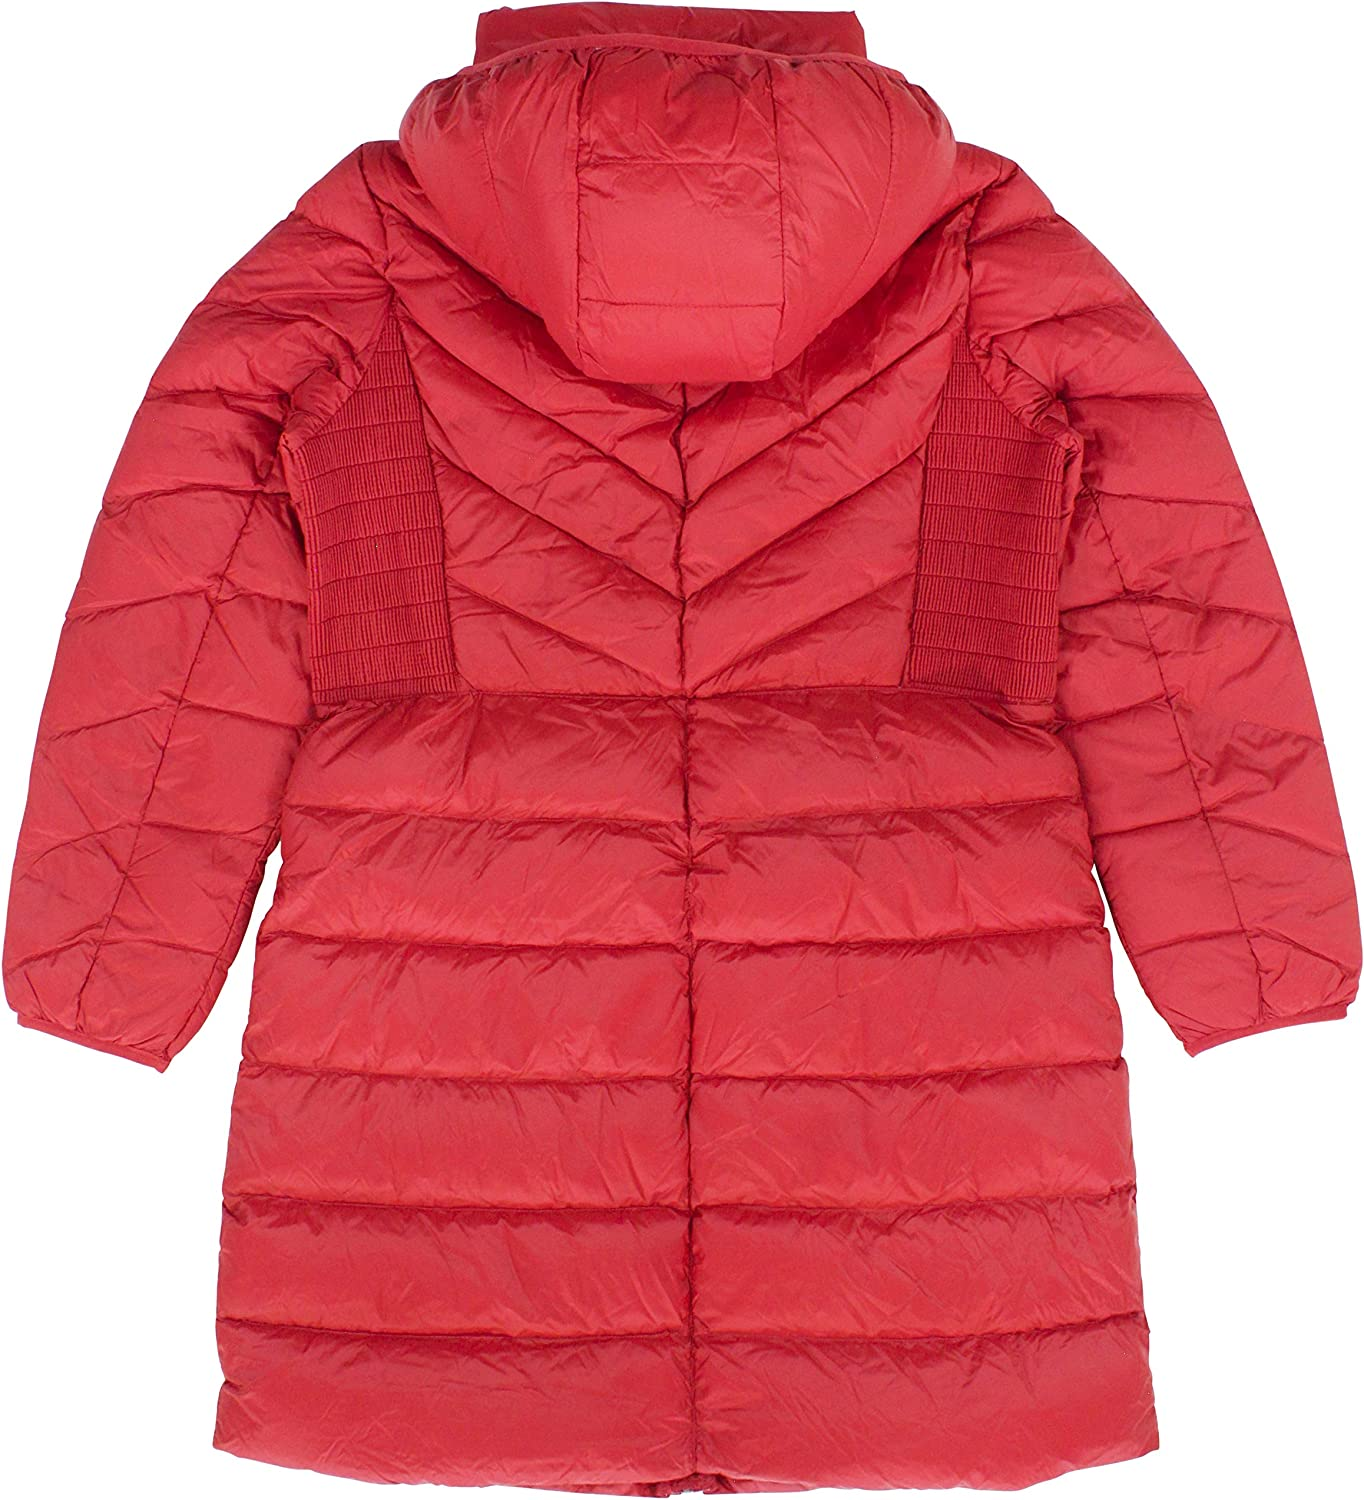 MICHAEL Michael Kors Toggle Front Hooded Coat is on sale now